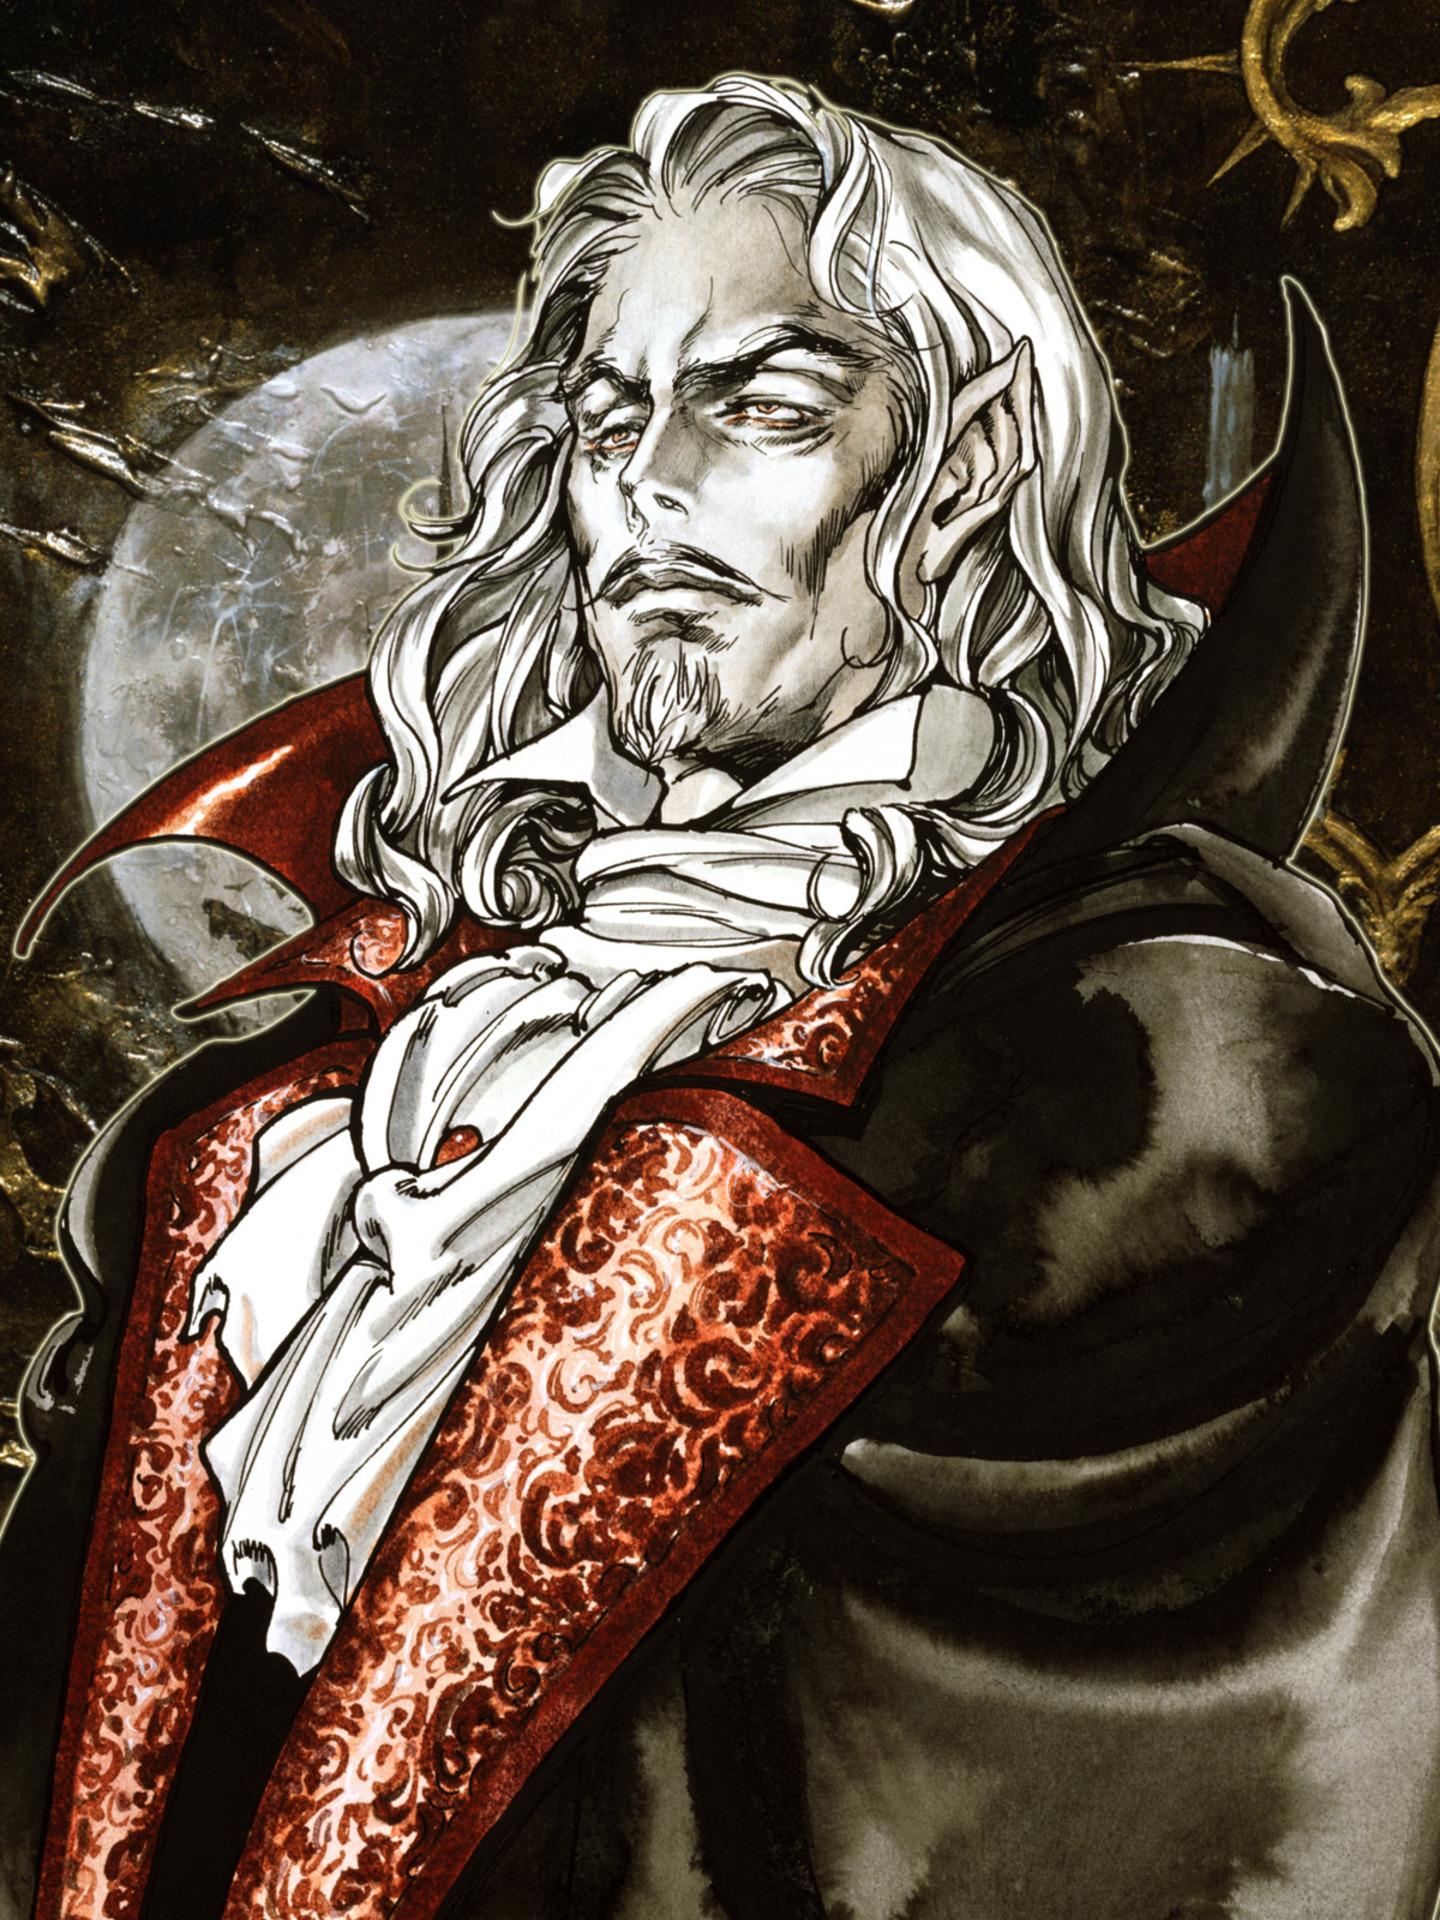 Dracula | Castlevania Wiki | FANDOM powered by Wikia